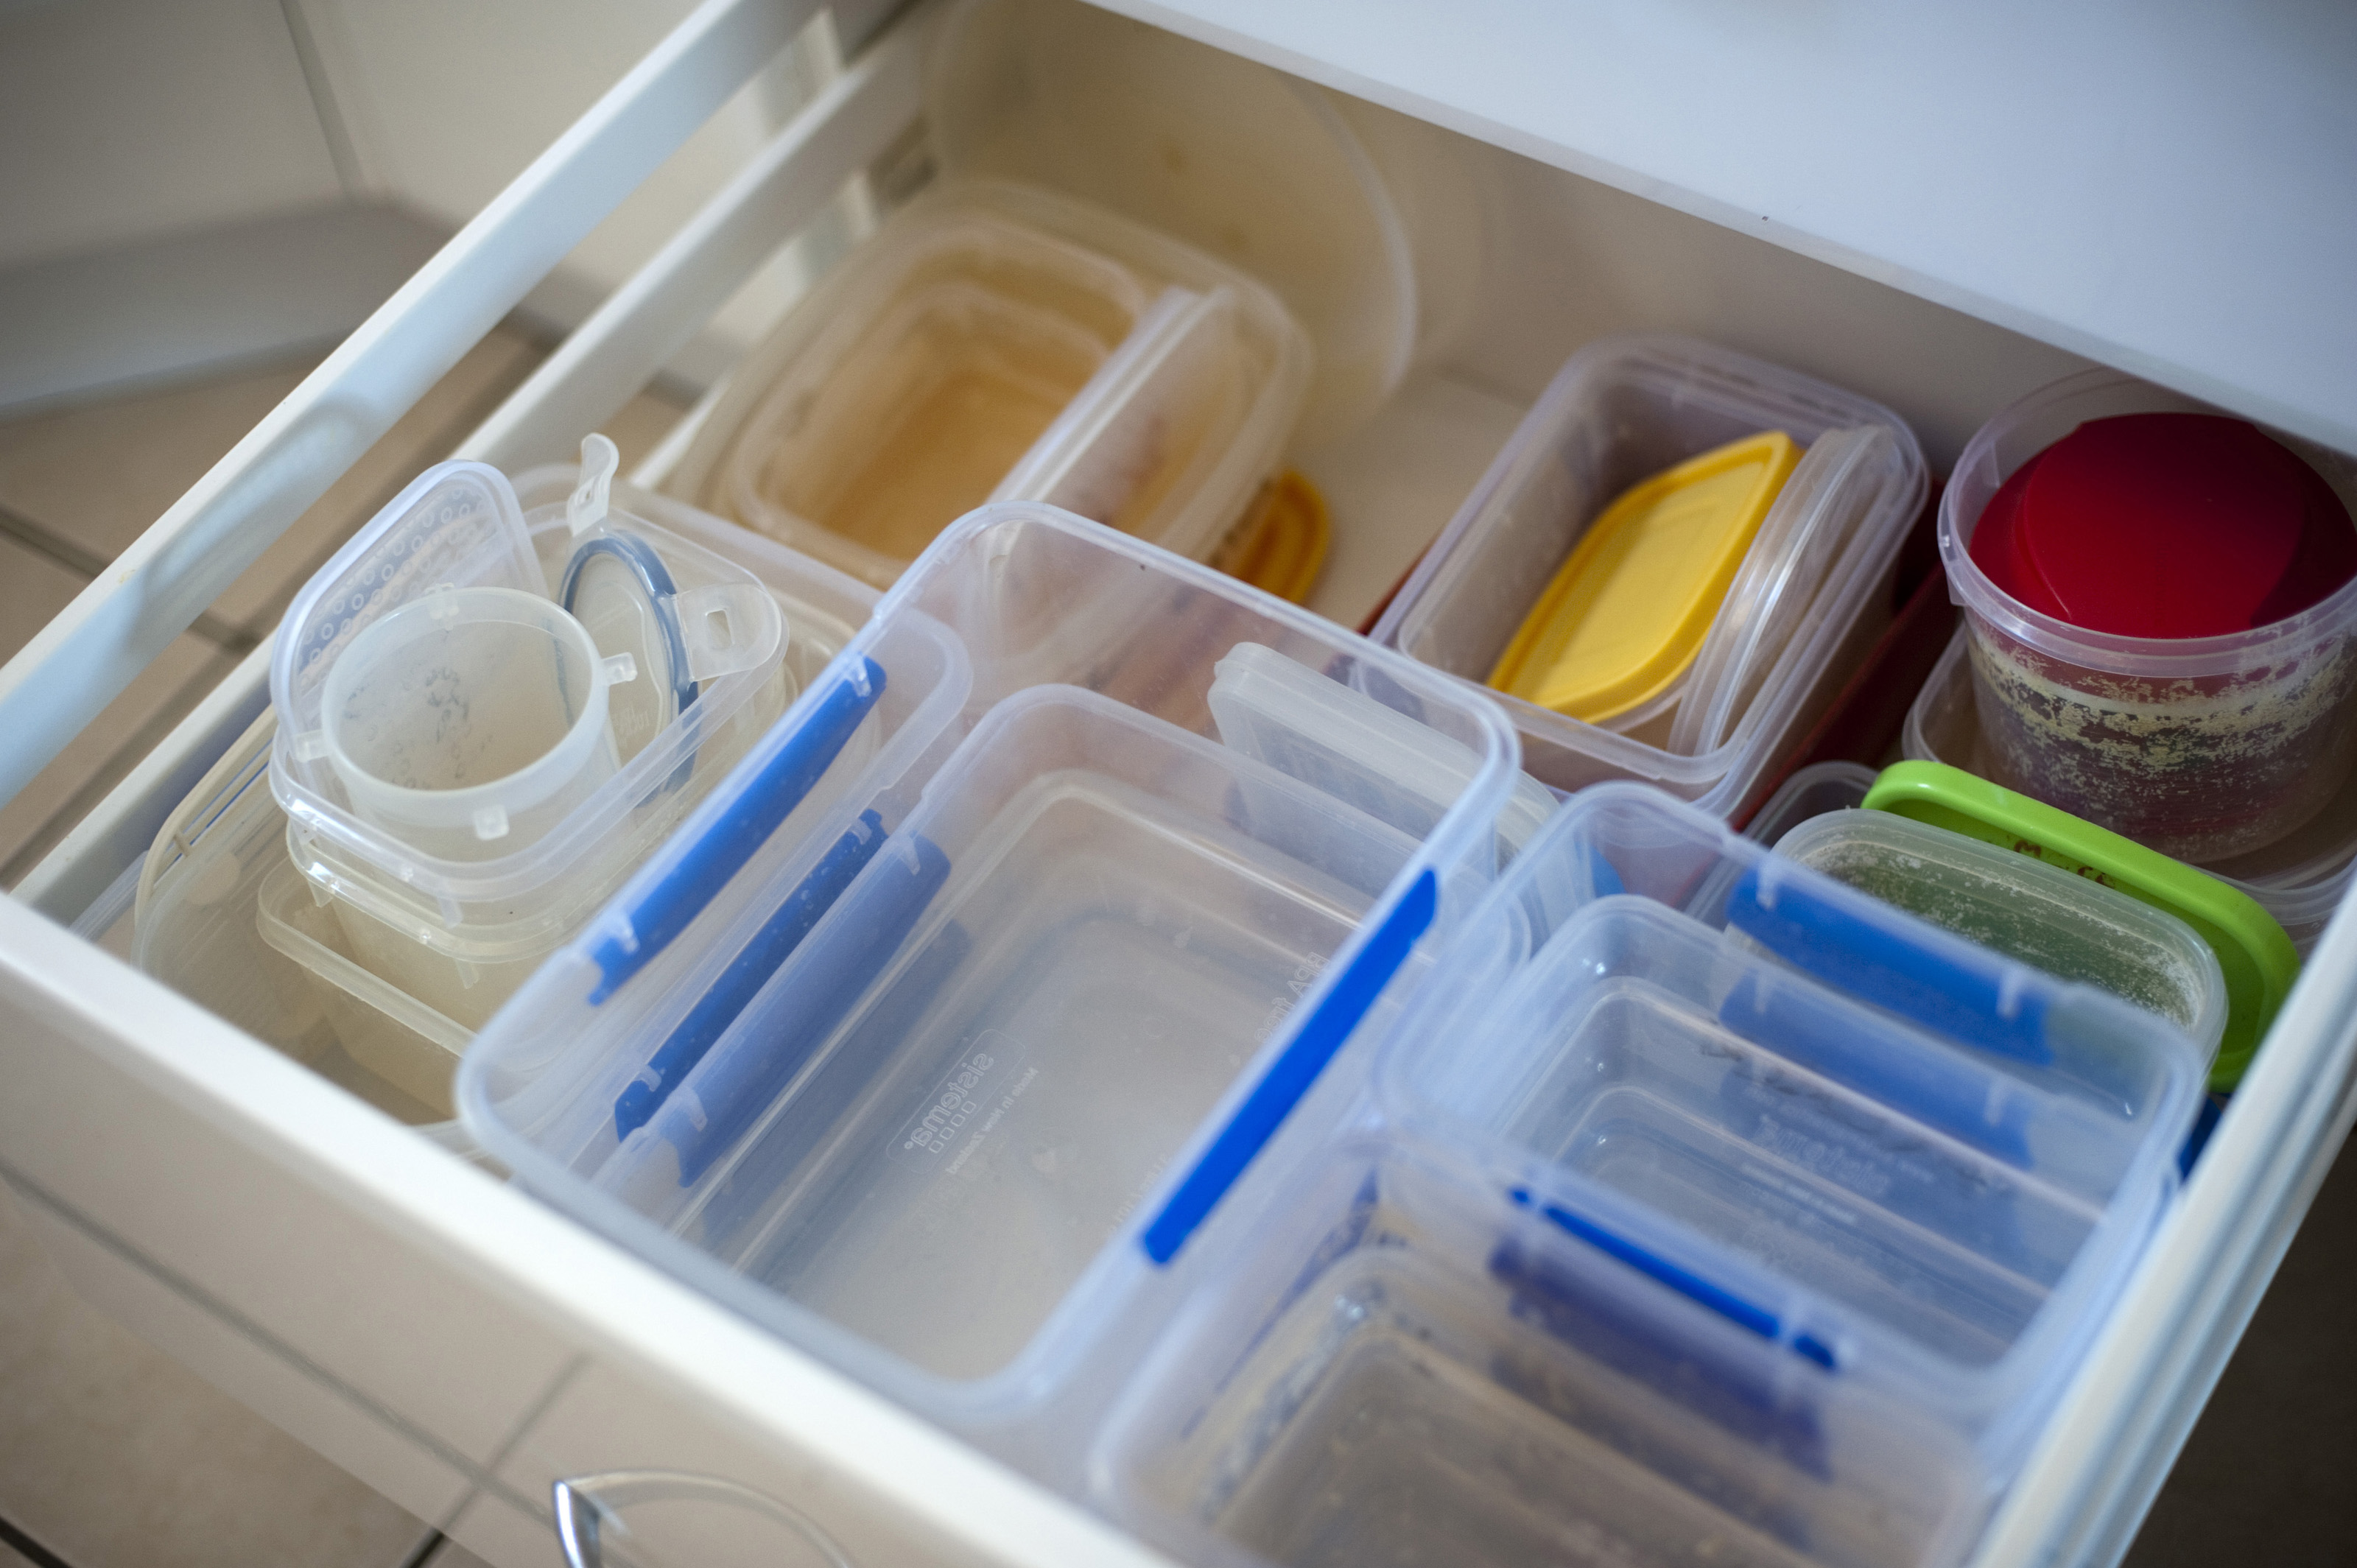 plastic kitchen storage containers free stock photo 8144 plastic kitchen containers 4272